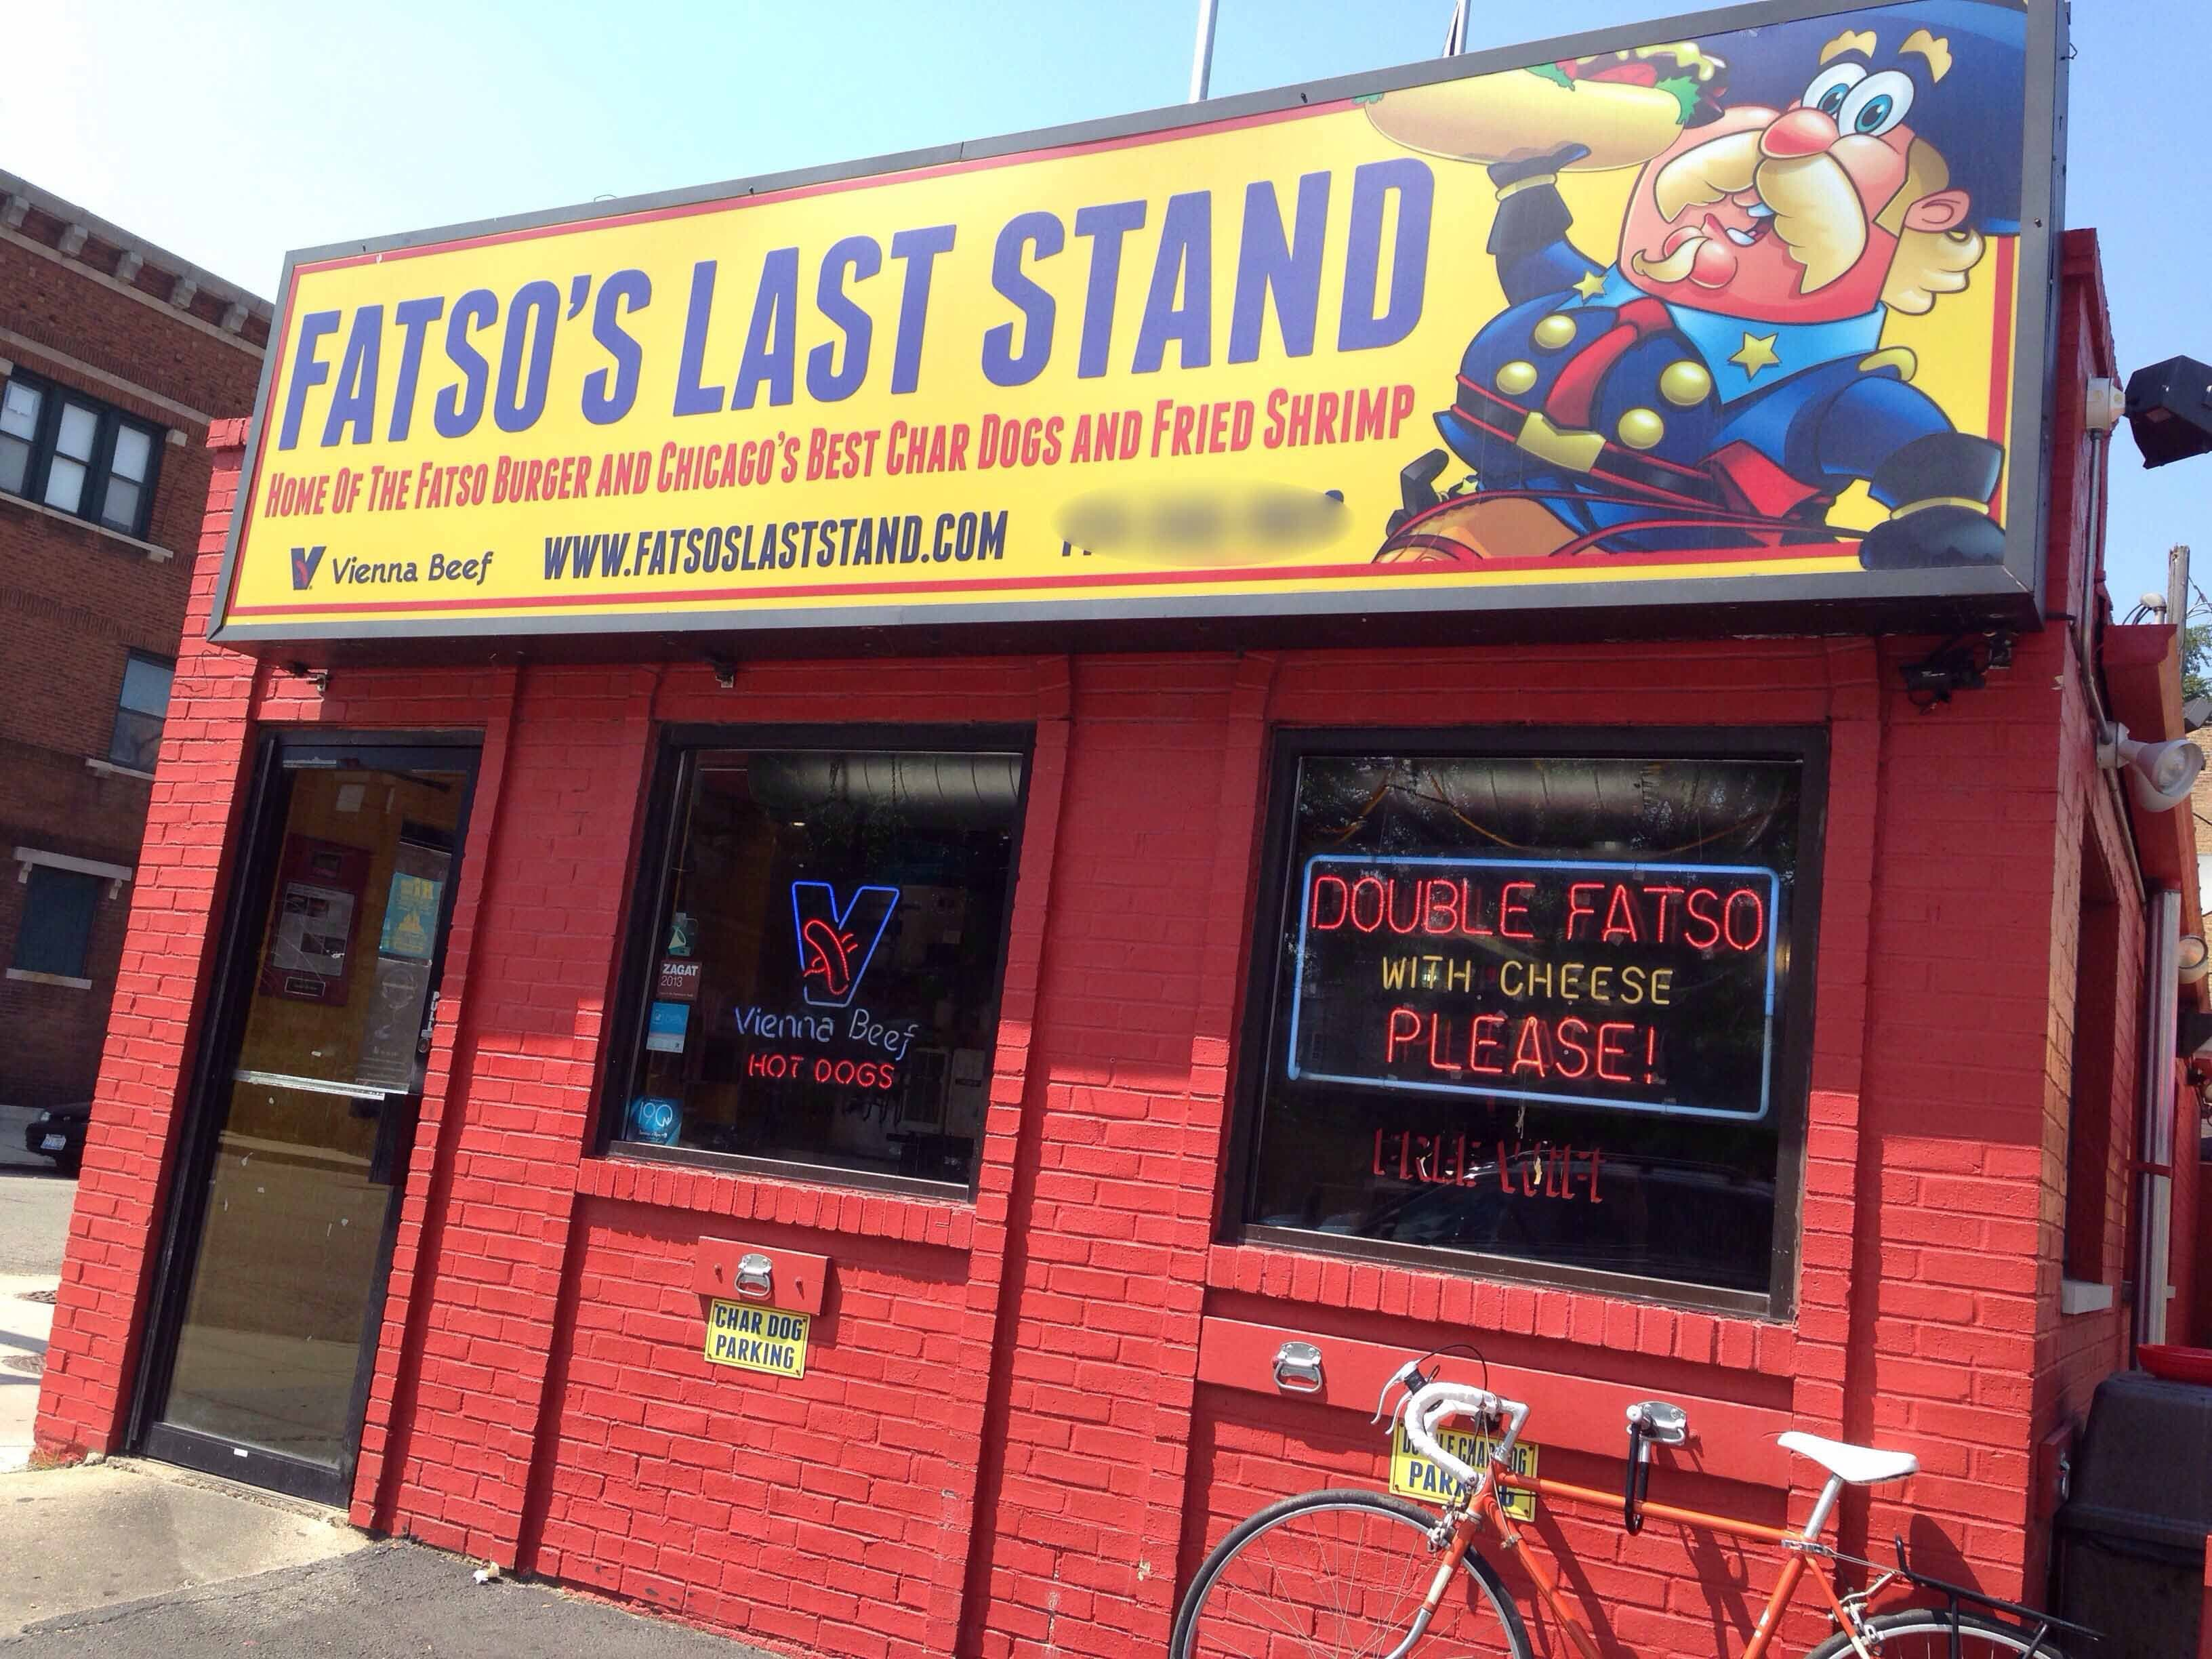 fatso's last stand in chicago